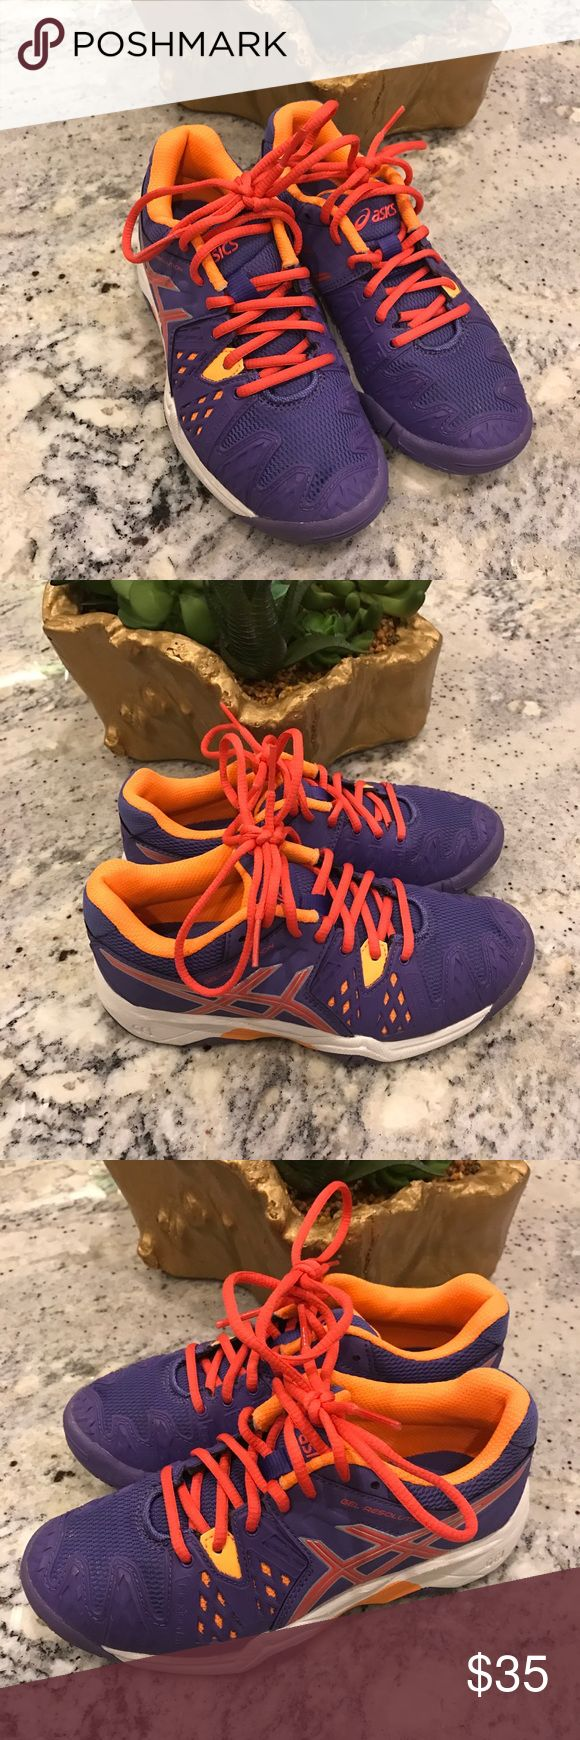 Asics Gel Resolution Girls Tennis Shoes Sz1 Asics Gel Resolution Flexion Fit Girls shoes for Tennis in purple and coral size 1. Worn twice to tennis lessons in excellent shape !! Asics Shoes Sneakers